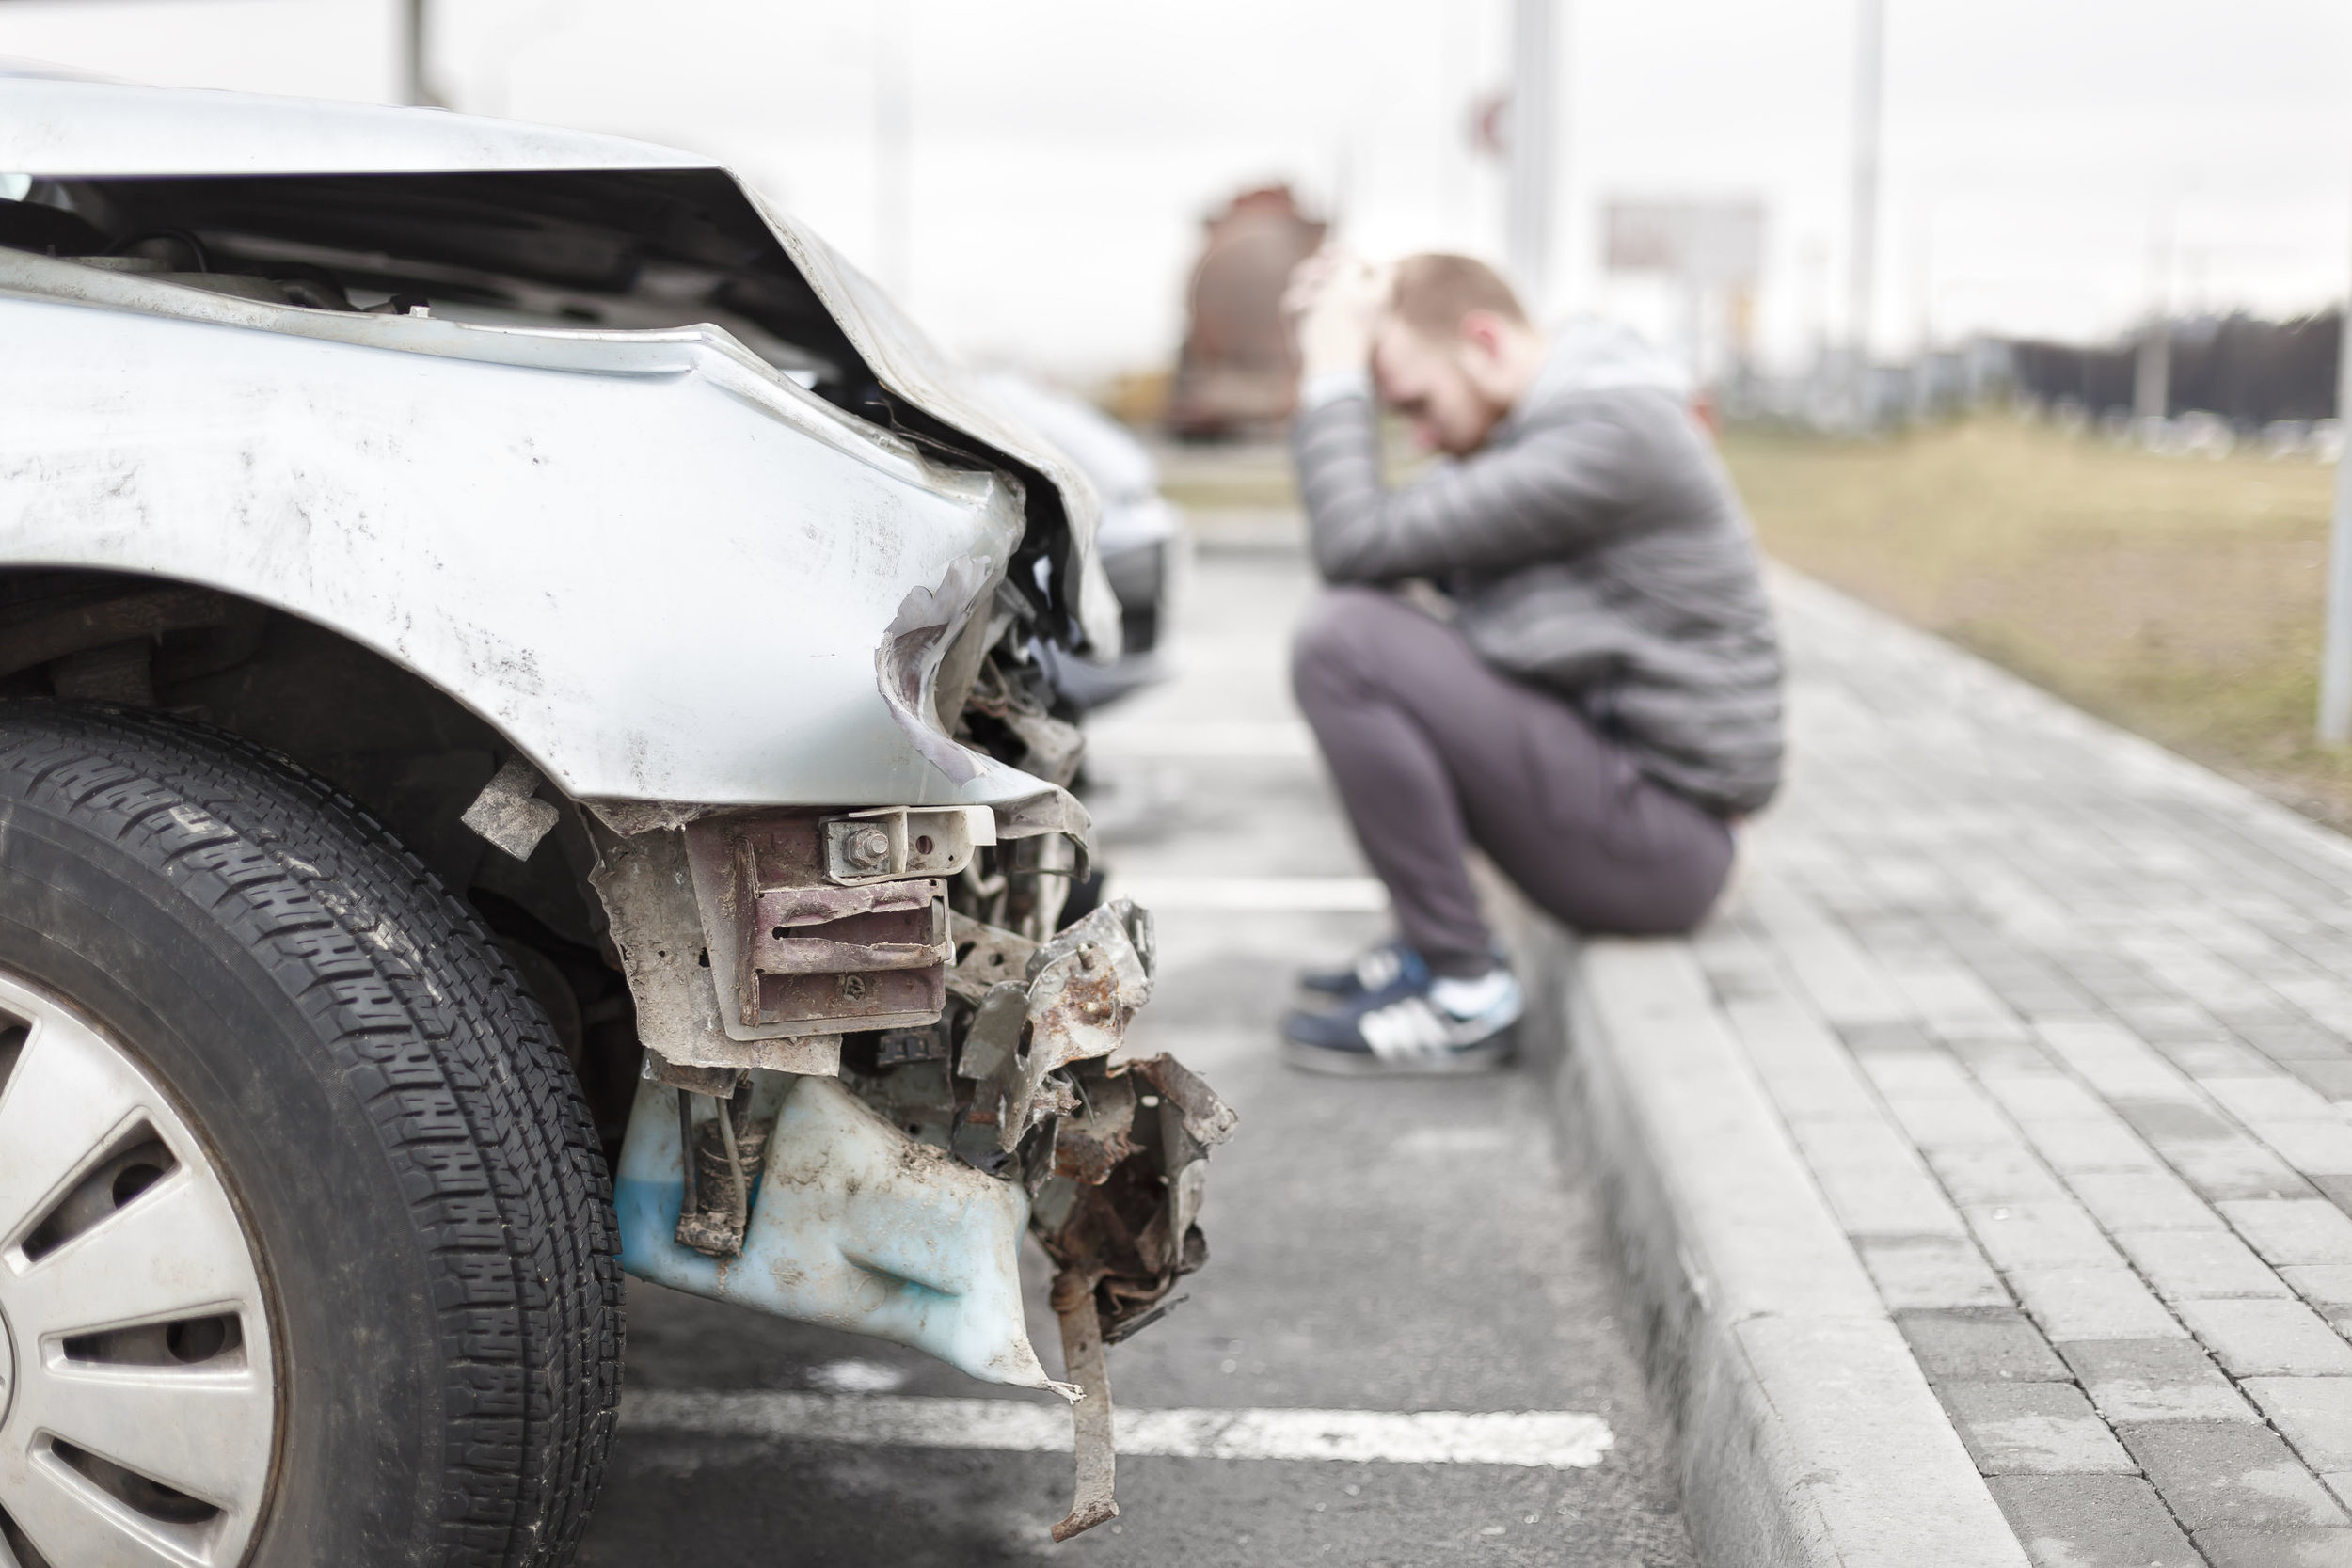 Auto Accidents - We all want to reach our destinations safely as we go about our day. However, much as we'd like to avoid them, some of us find ourselves in unfortunate situations wherein we get involved in vehicular accidents. As a result, medical expenses and absence from work may cause financial stress. Here at Gregory Spektor & Associates P.C., we help our clients obtain a fair settlement so that they can recover from the financial burden and physical damages caused by these accidents.